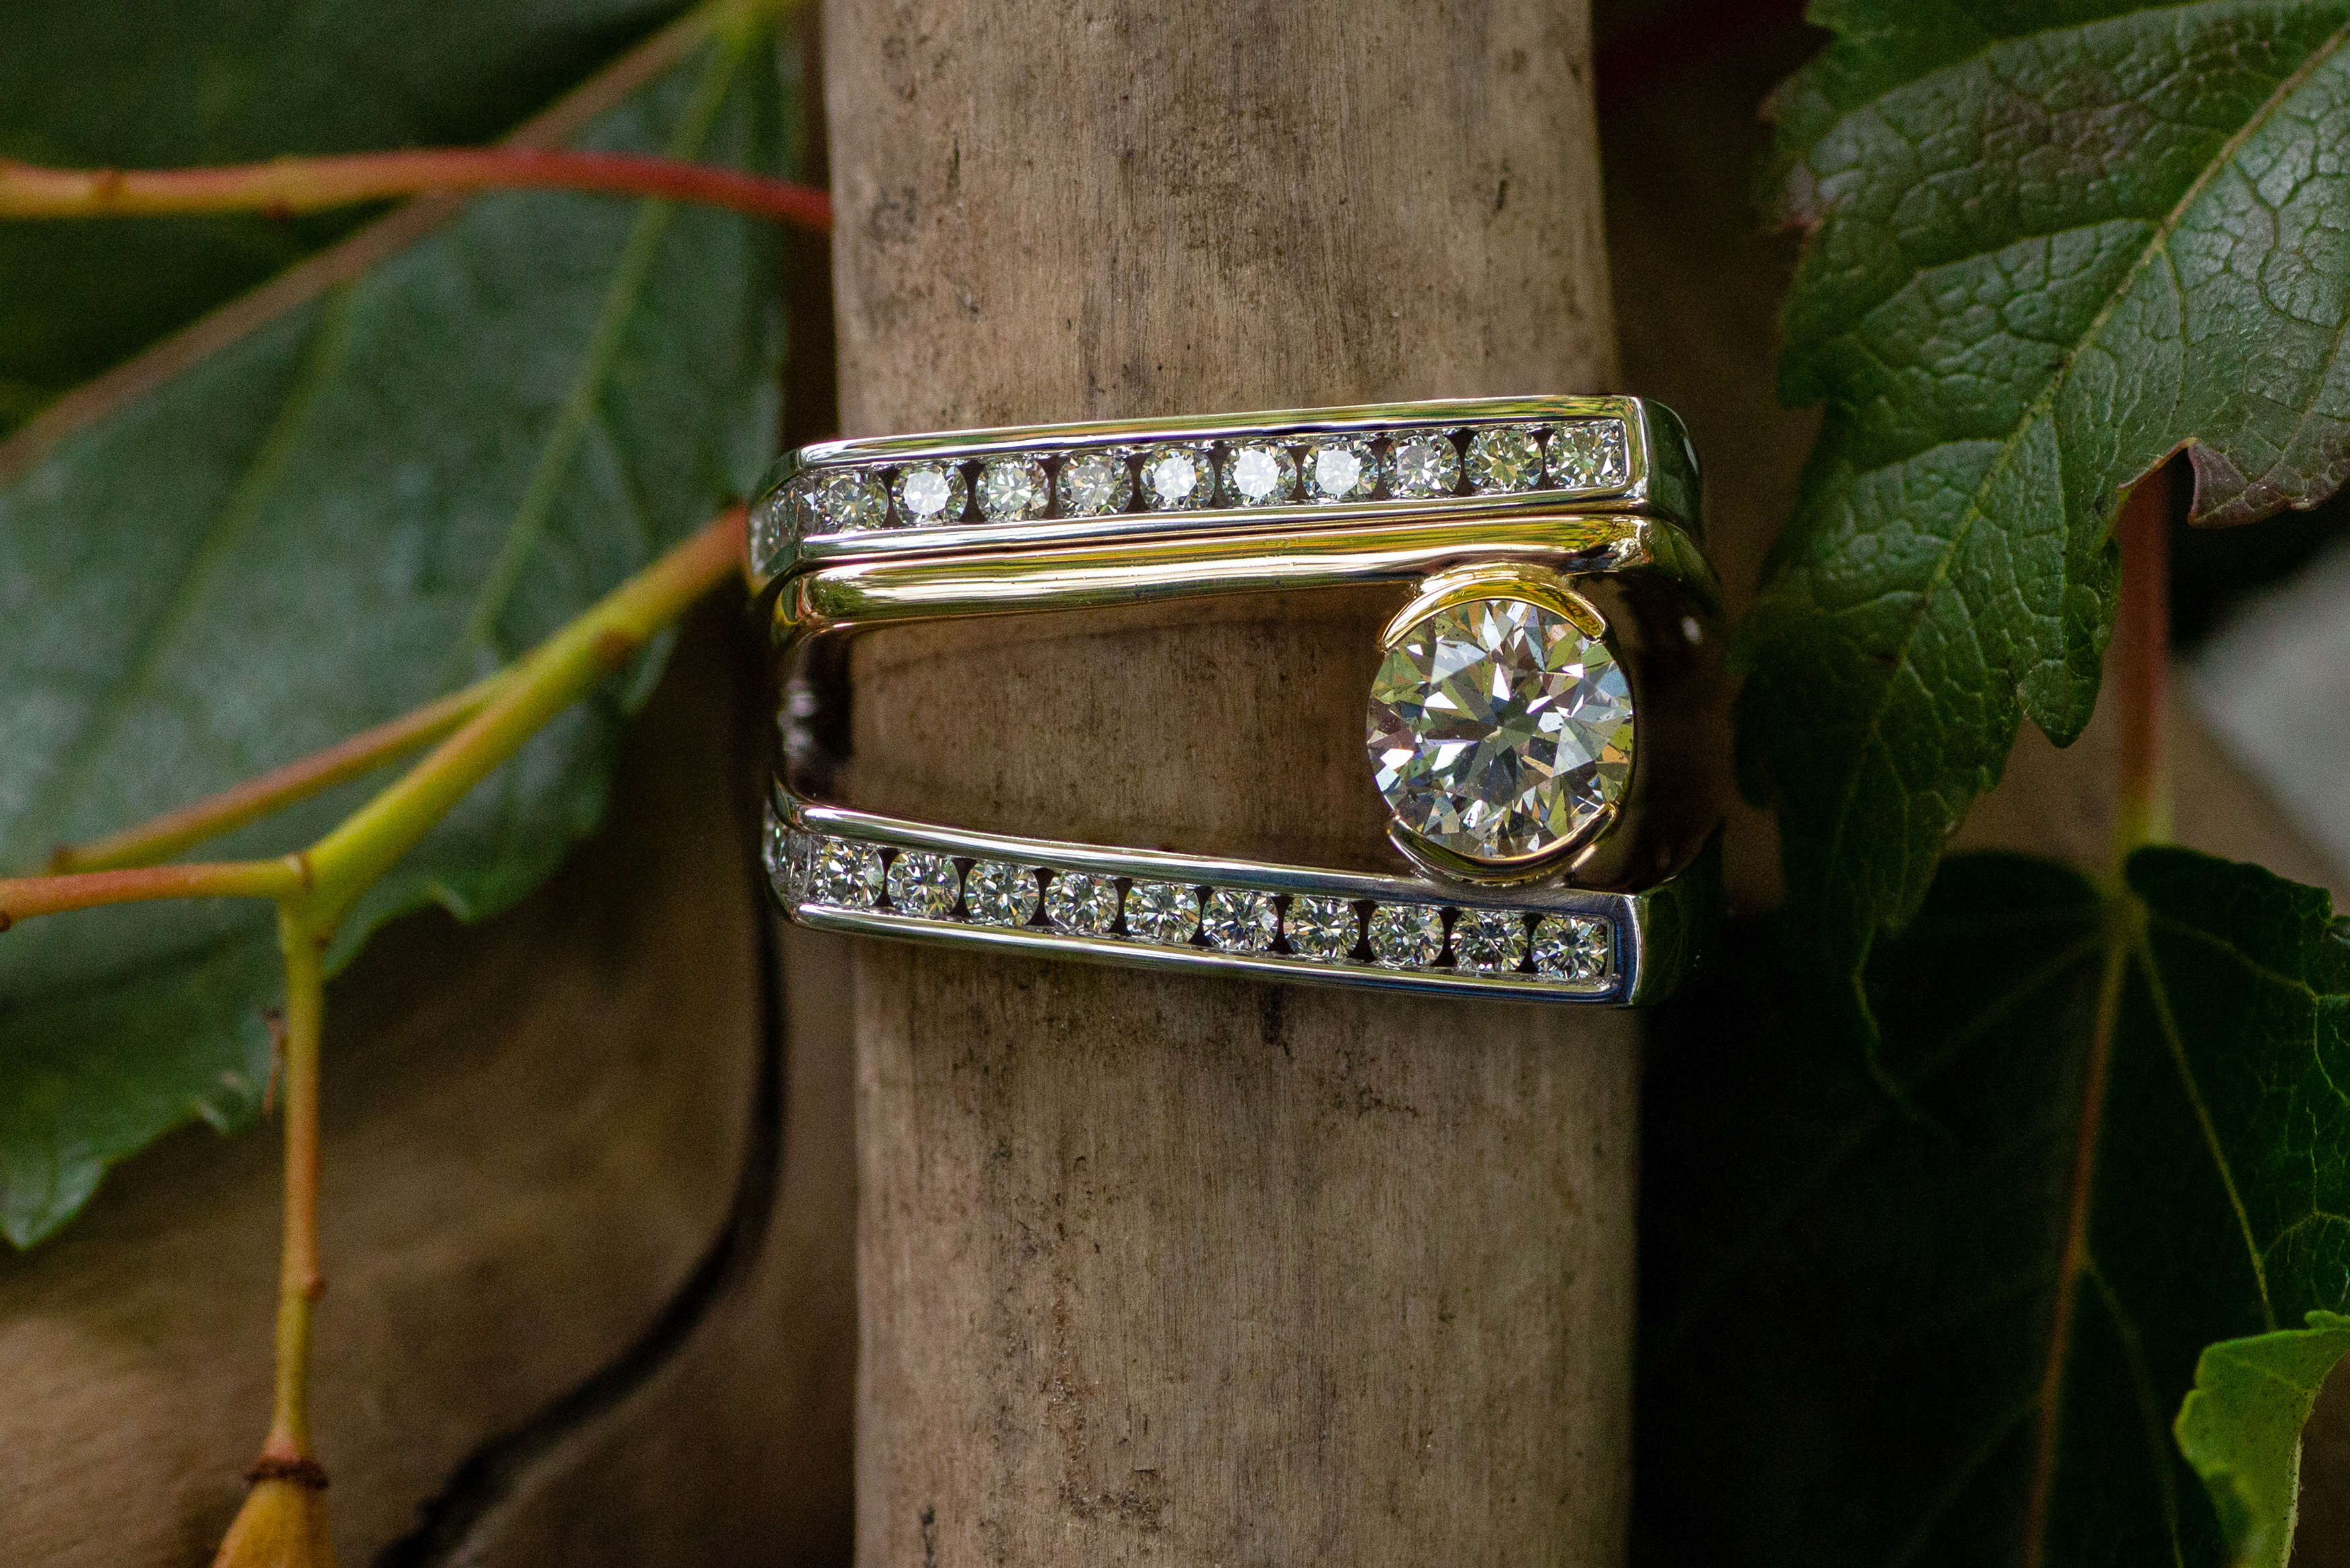 Diamonds in 14kt White and Yellow Gold wedding set.